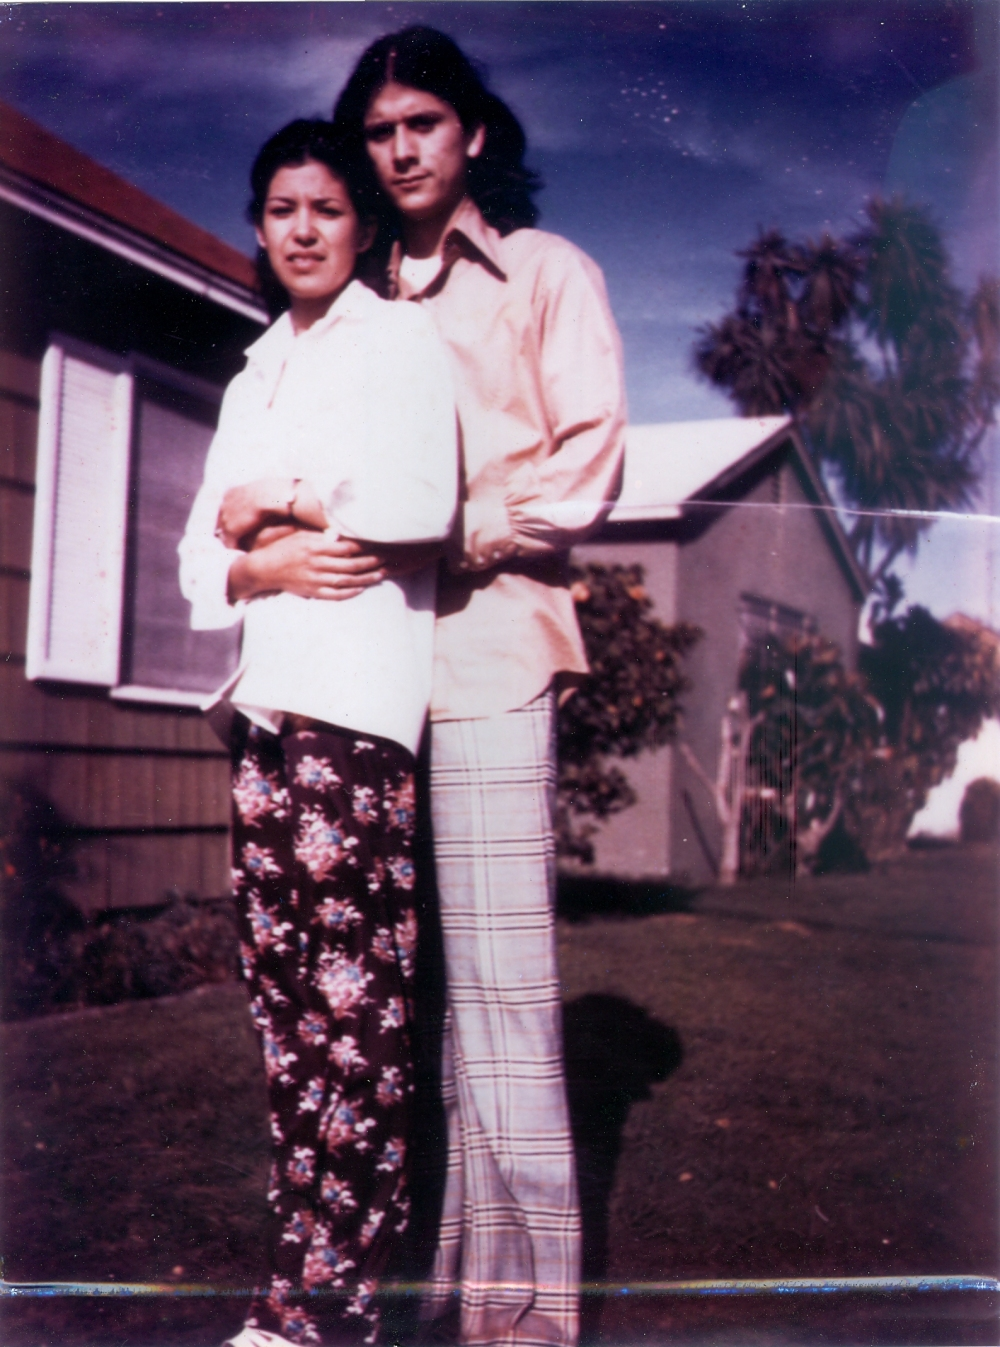 Toribio and Rose Preciado, proud parents of Josiah Preciado, just barely in there twenties.